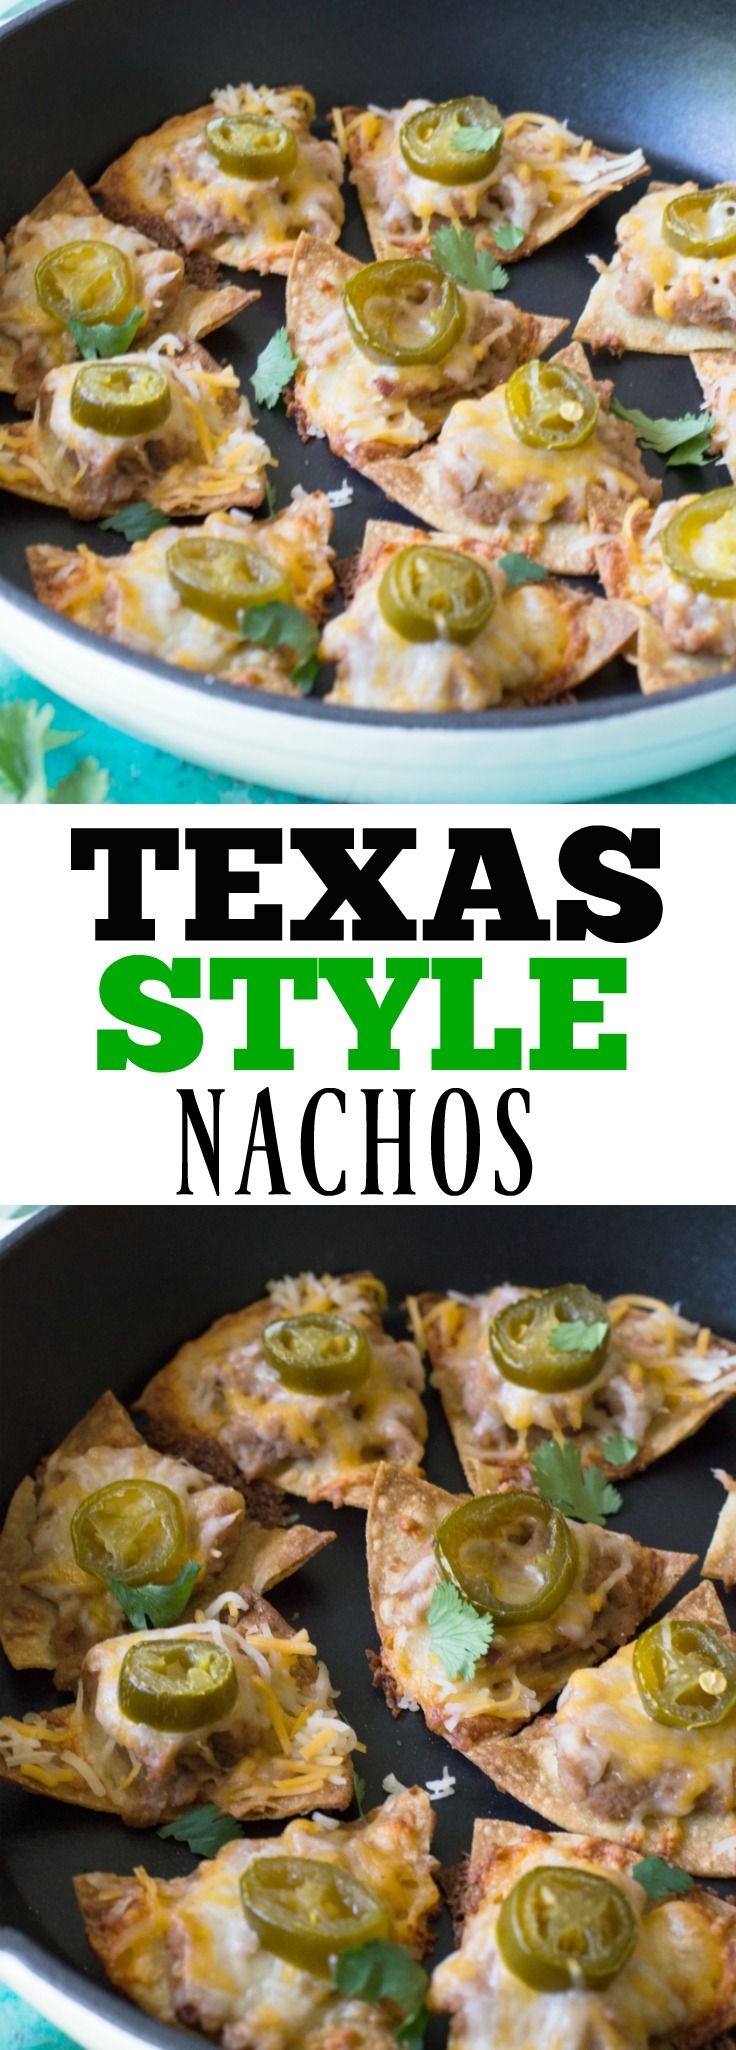 Texas Nachos!  Enjoy nachos the way the Texans do!  This simple dish is the perfect snack or appetizer to satisfy your mexican food cravings.